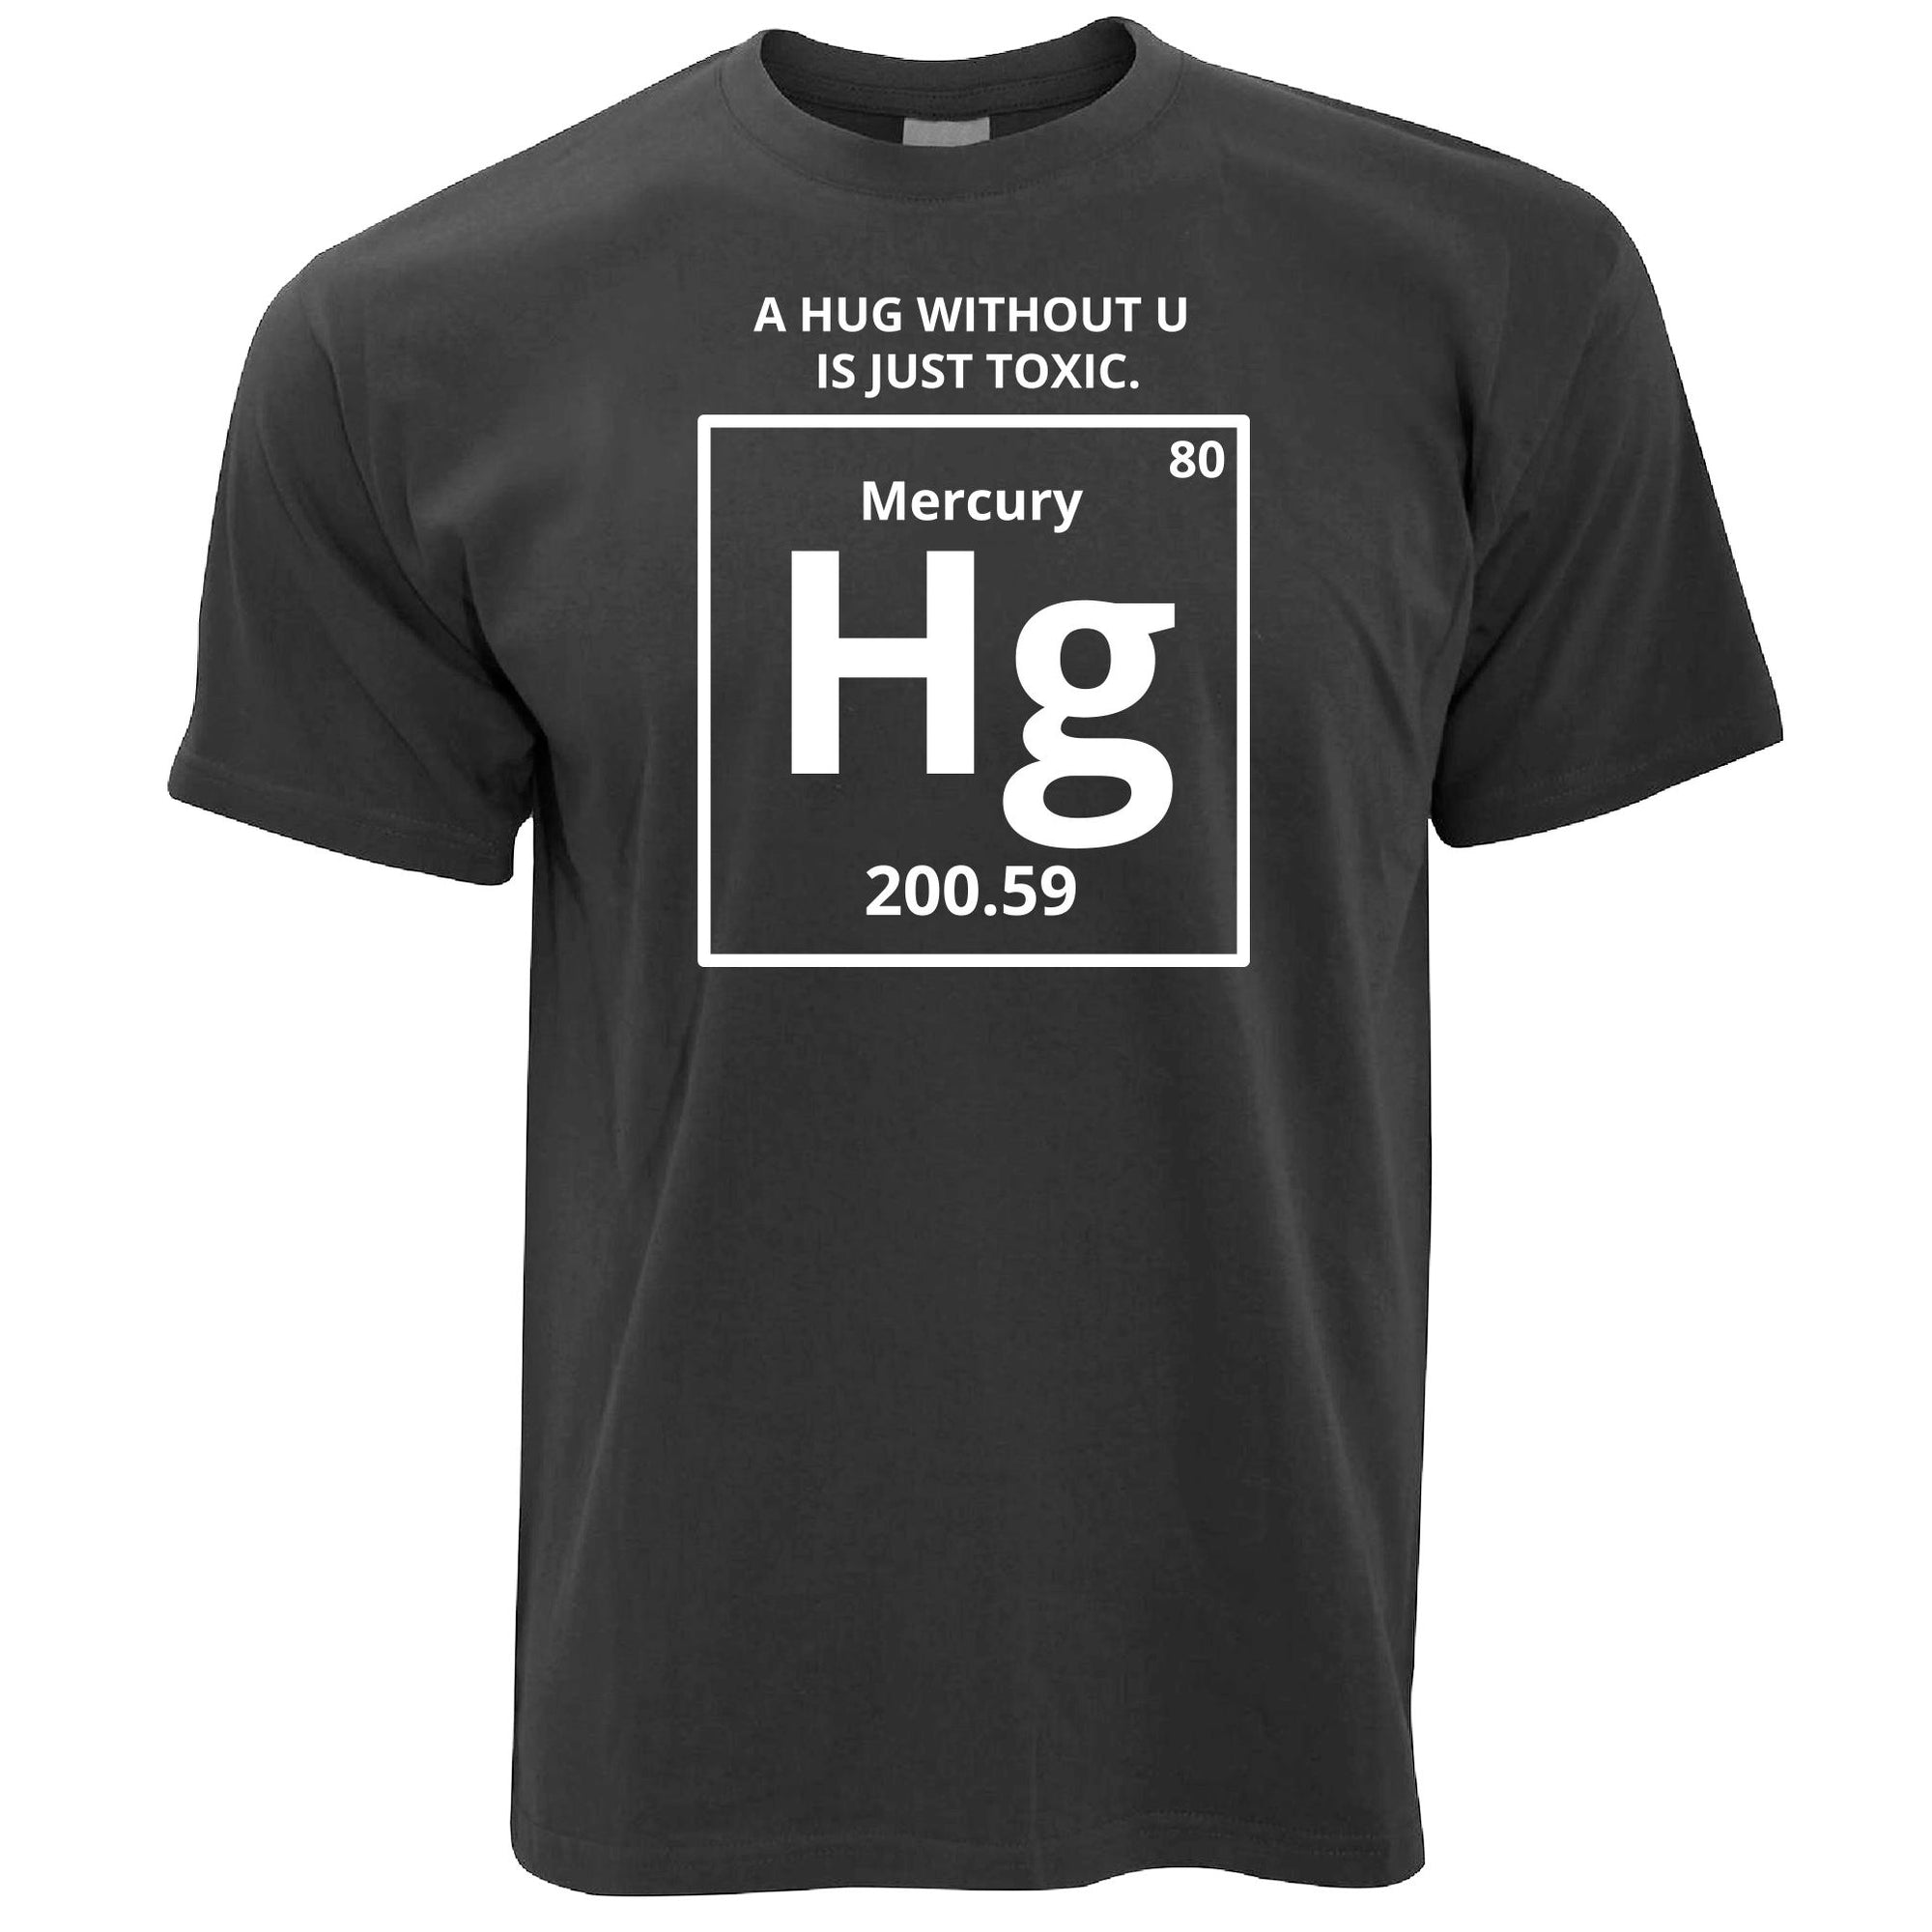 Mens Funny Science T Shirt Mercury Hug Chemistry Joke Tee